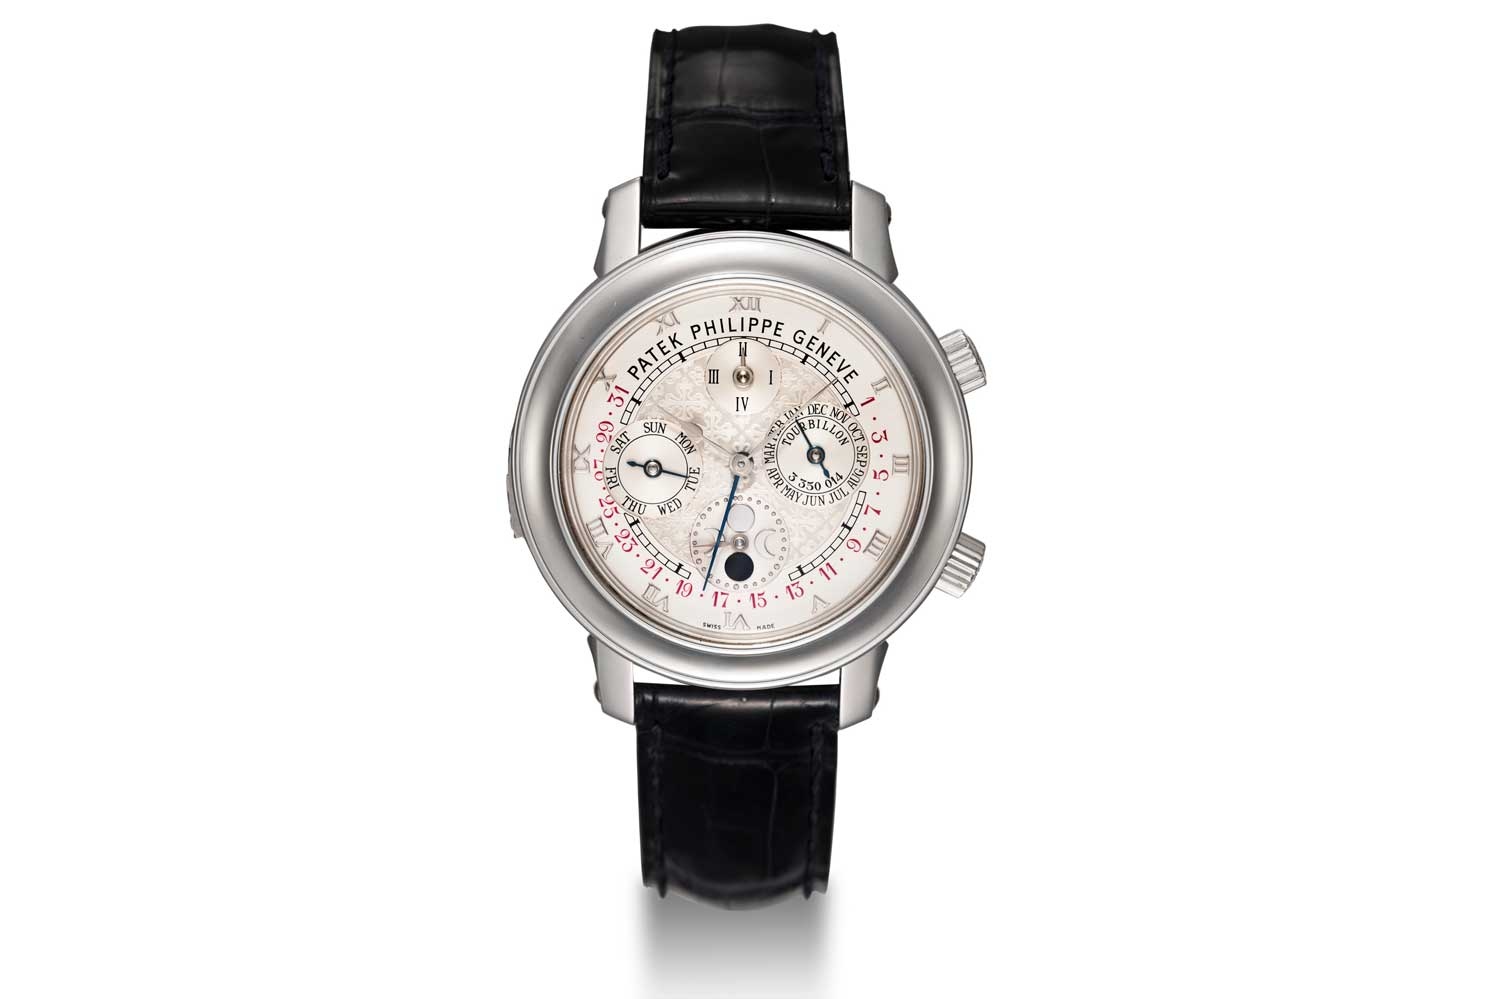 Patek Philippe made no compromises in having its tourbillon watches COSC certified, this even applied to the grand complications such as the ref. 5002 Sky Moon Tourbillon, seen here in platinum (Image: christies.com)